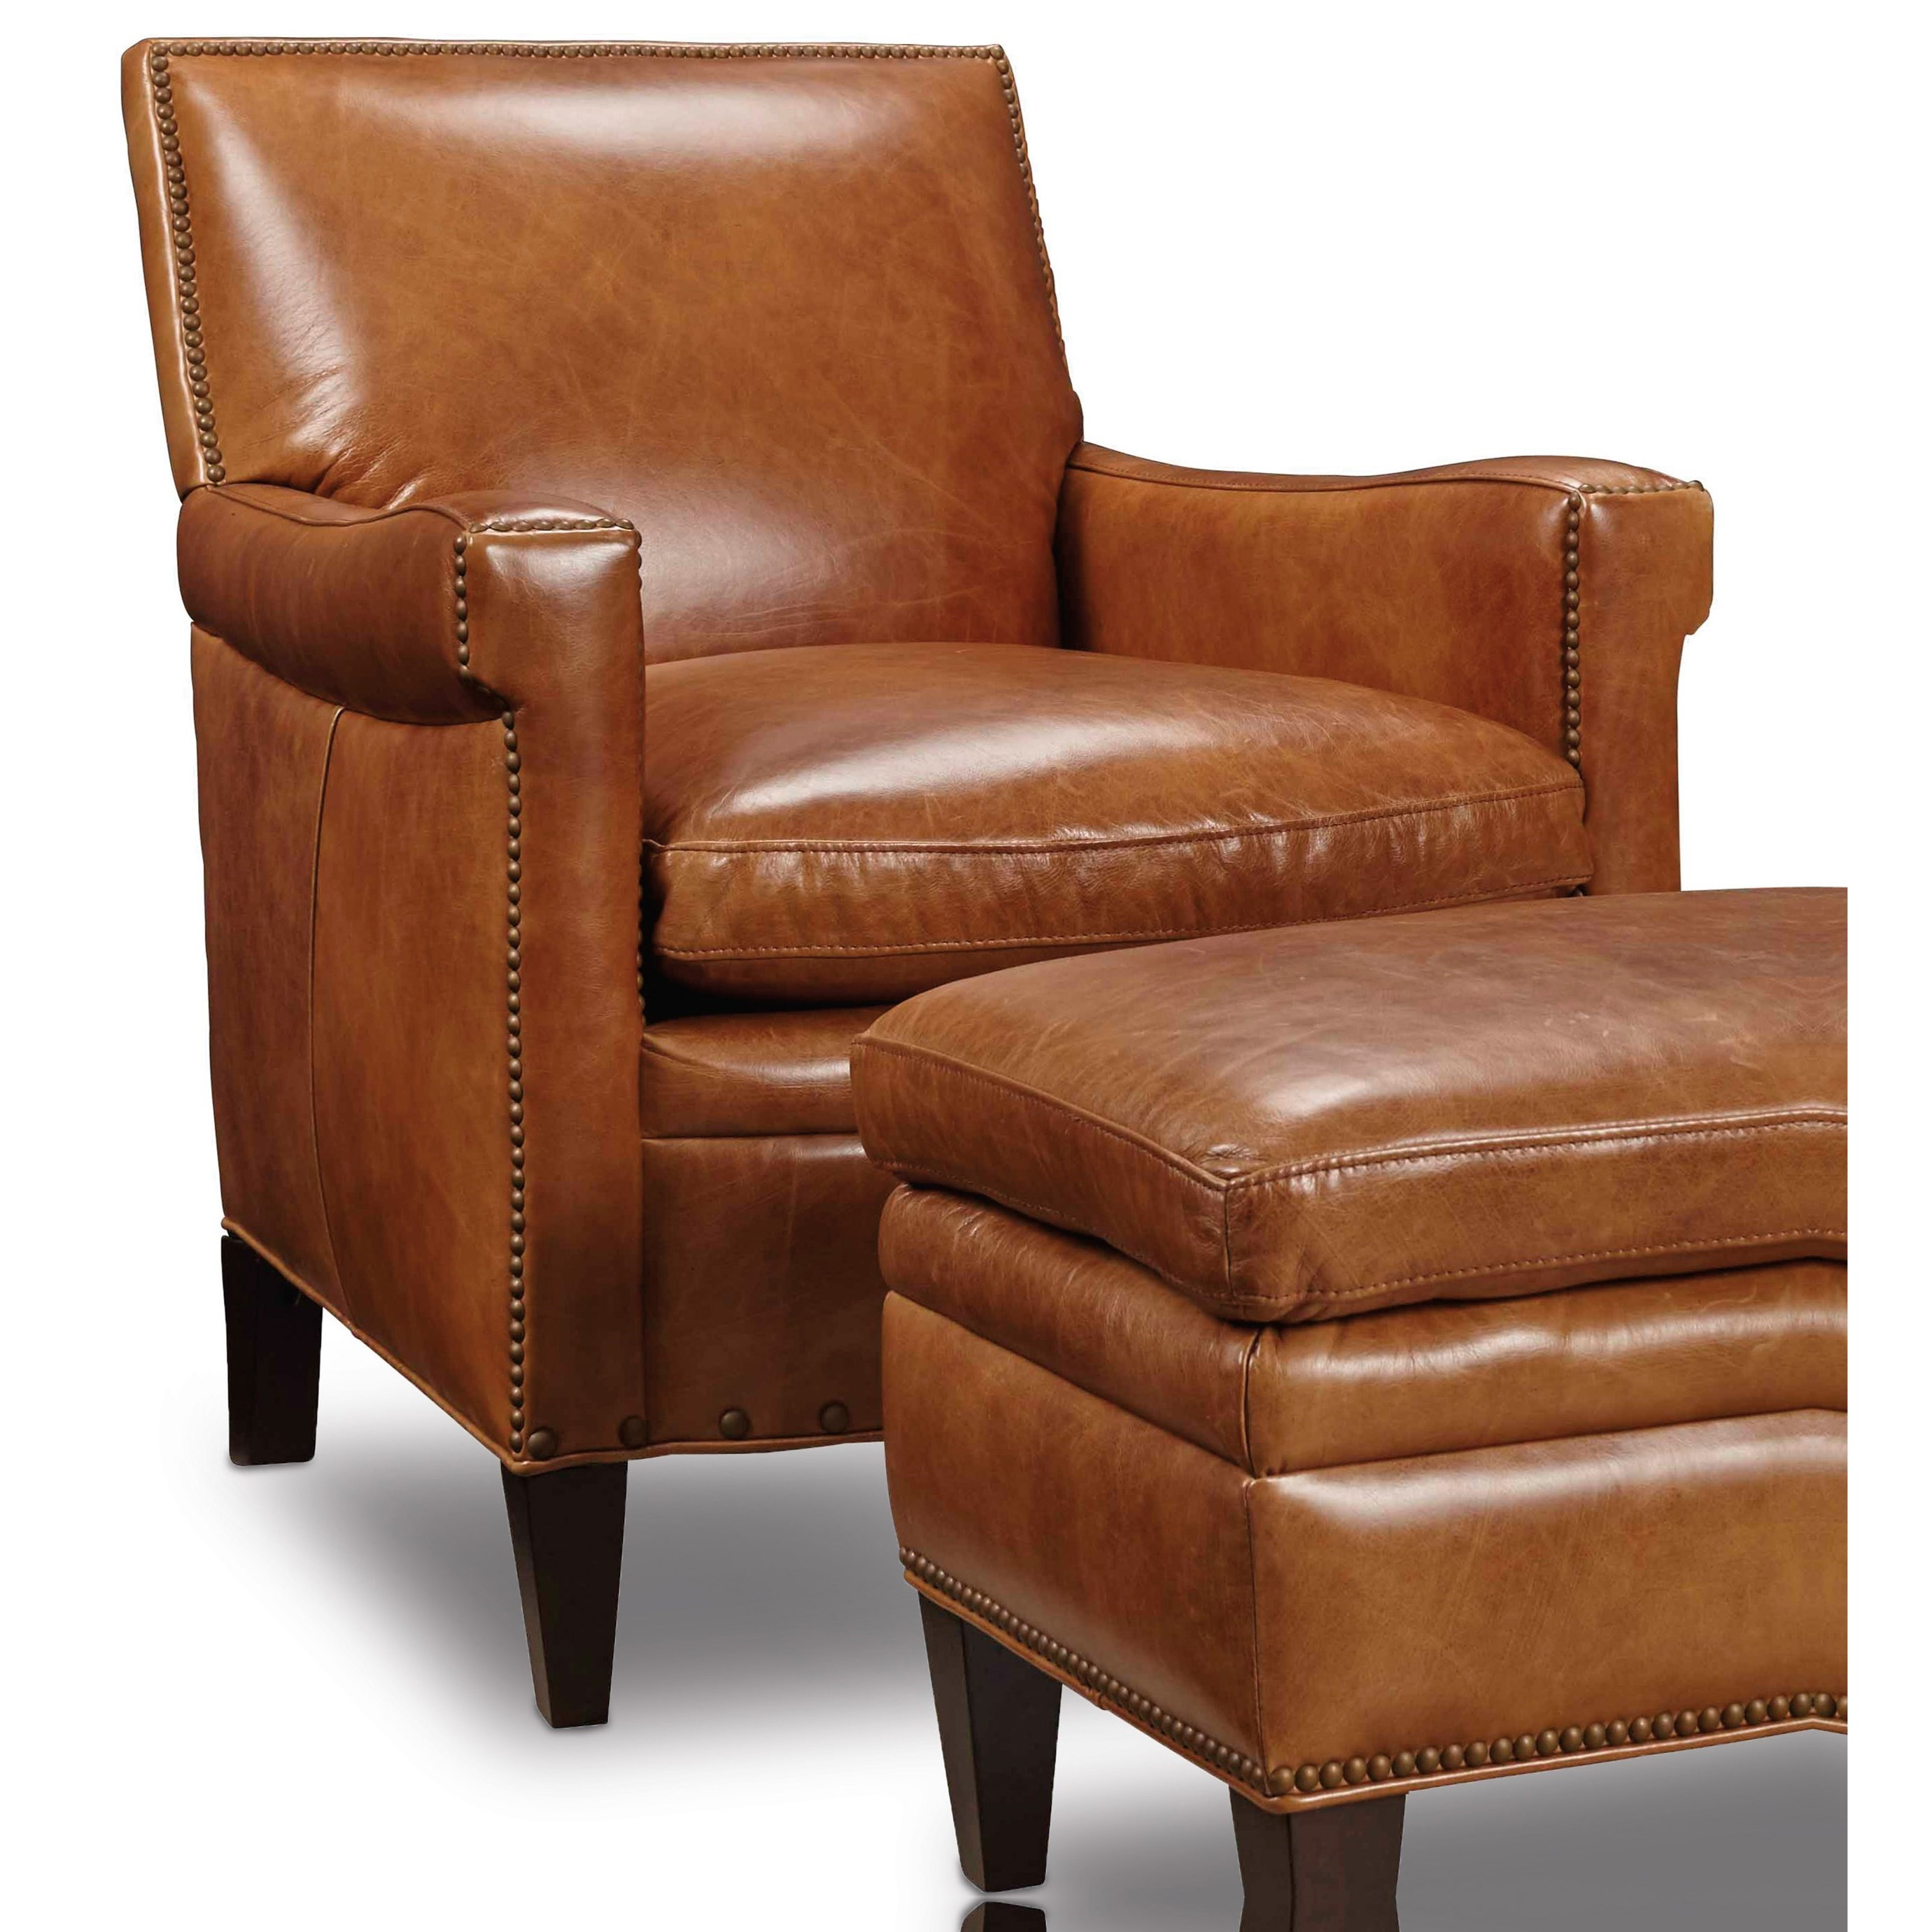 Hooker Furniture Club Chairs Traditional Club Chair With Nailhead Trim Knight Furniture